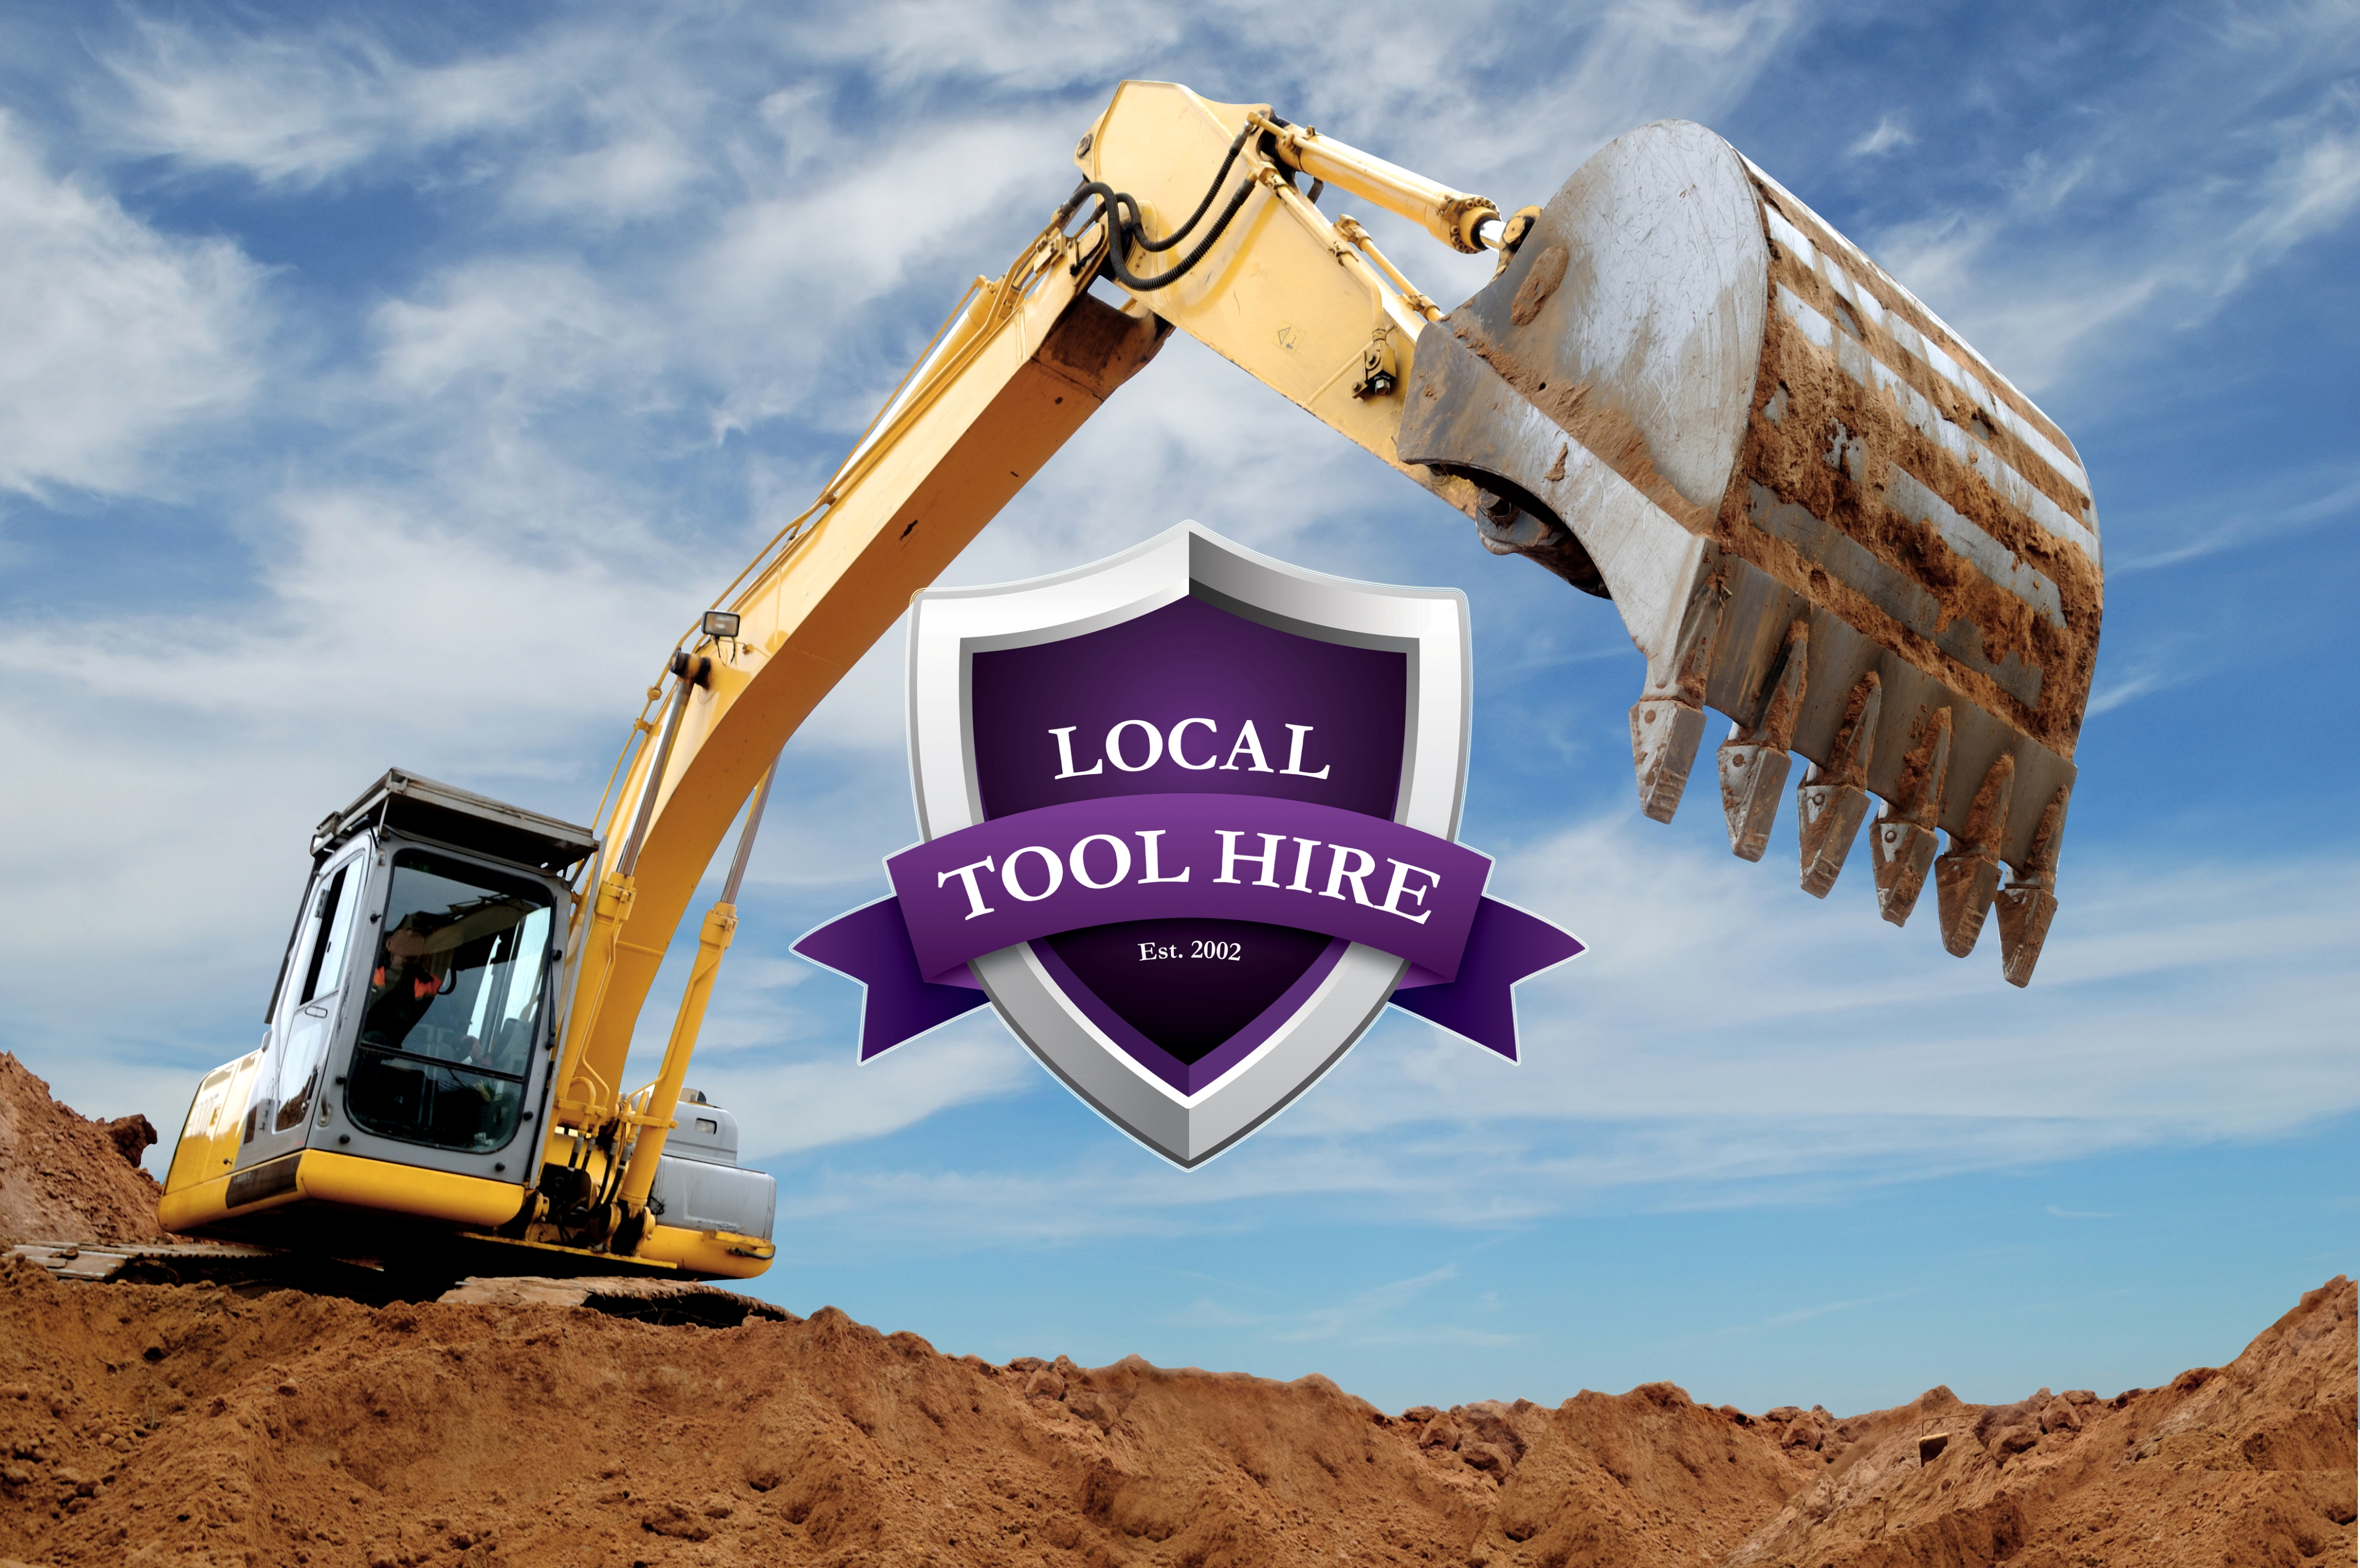 LOCAL TOOL HIRE - London, London NW5 3HS - 020 7485 3095 | ShowMeLocal.com